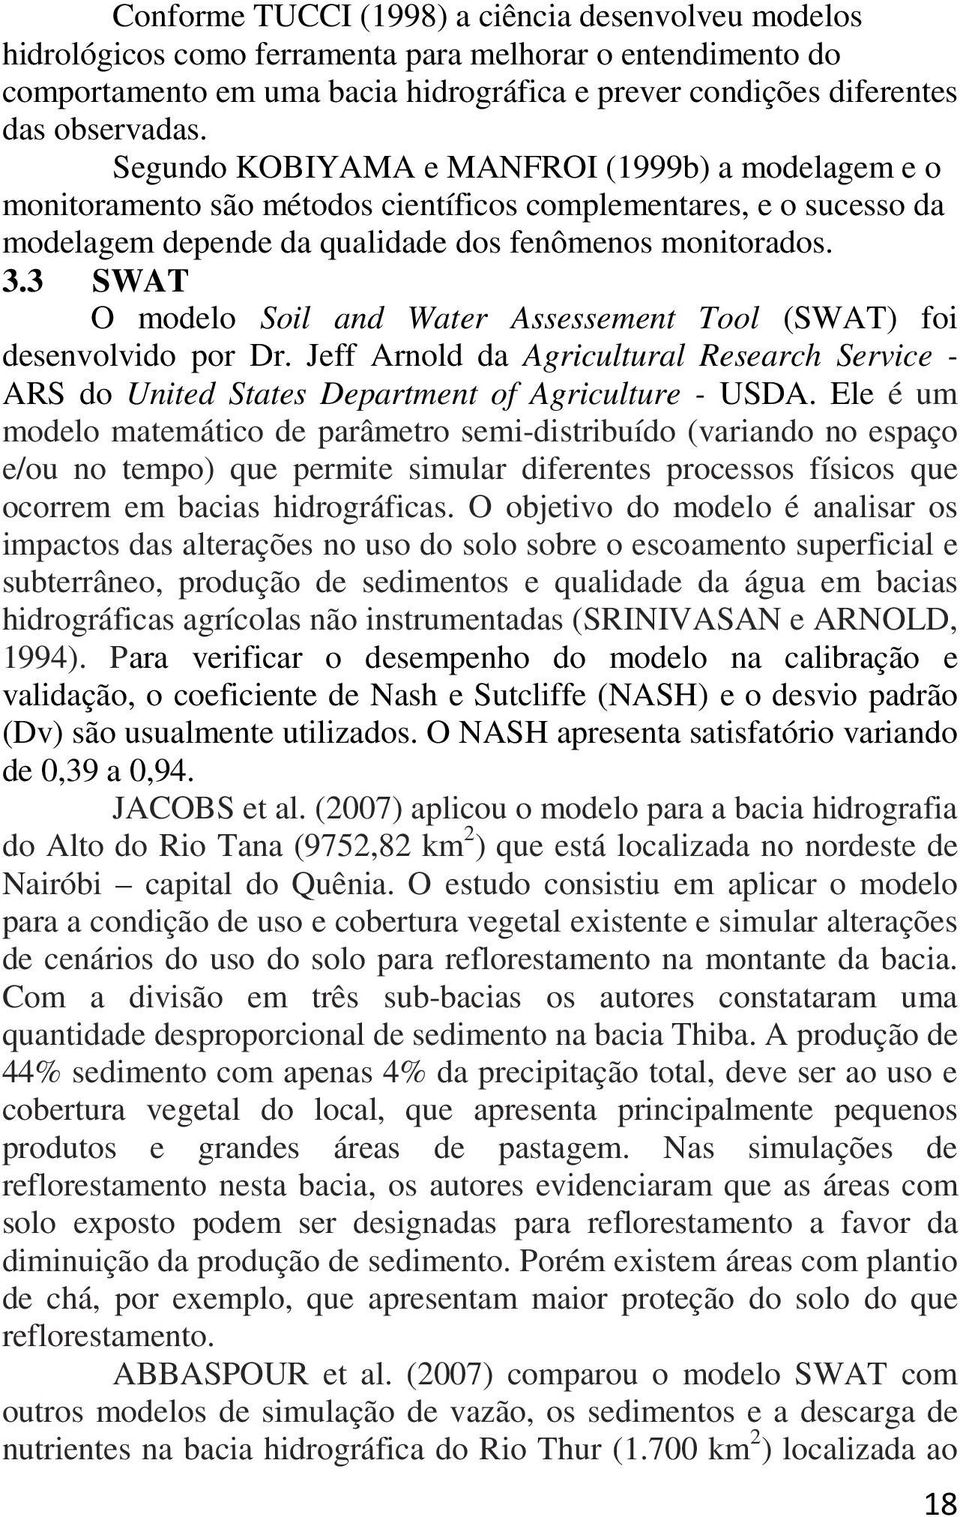 3 SWAT O modelo Soil and Water Assessement Tool (SWAT) foi desenvolvido por Dr. Jeff Arnold da Agricultural Research Service - ARS do United States Department of Agriculture - USDA.